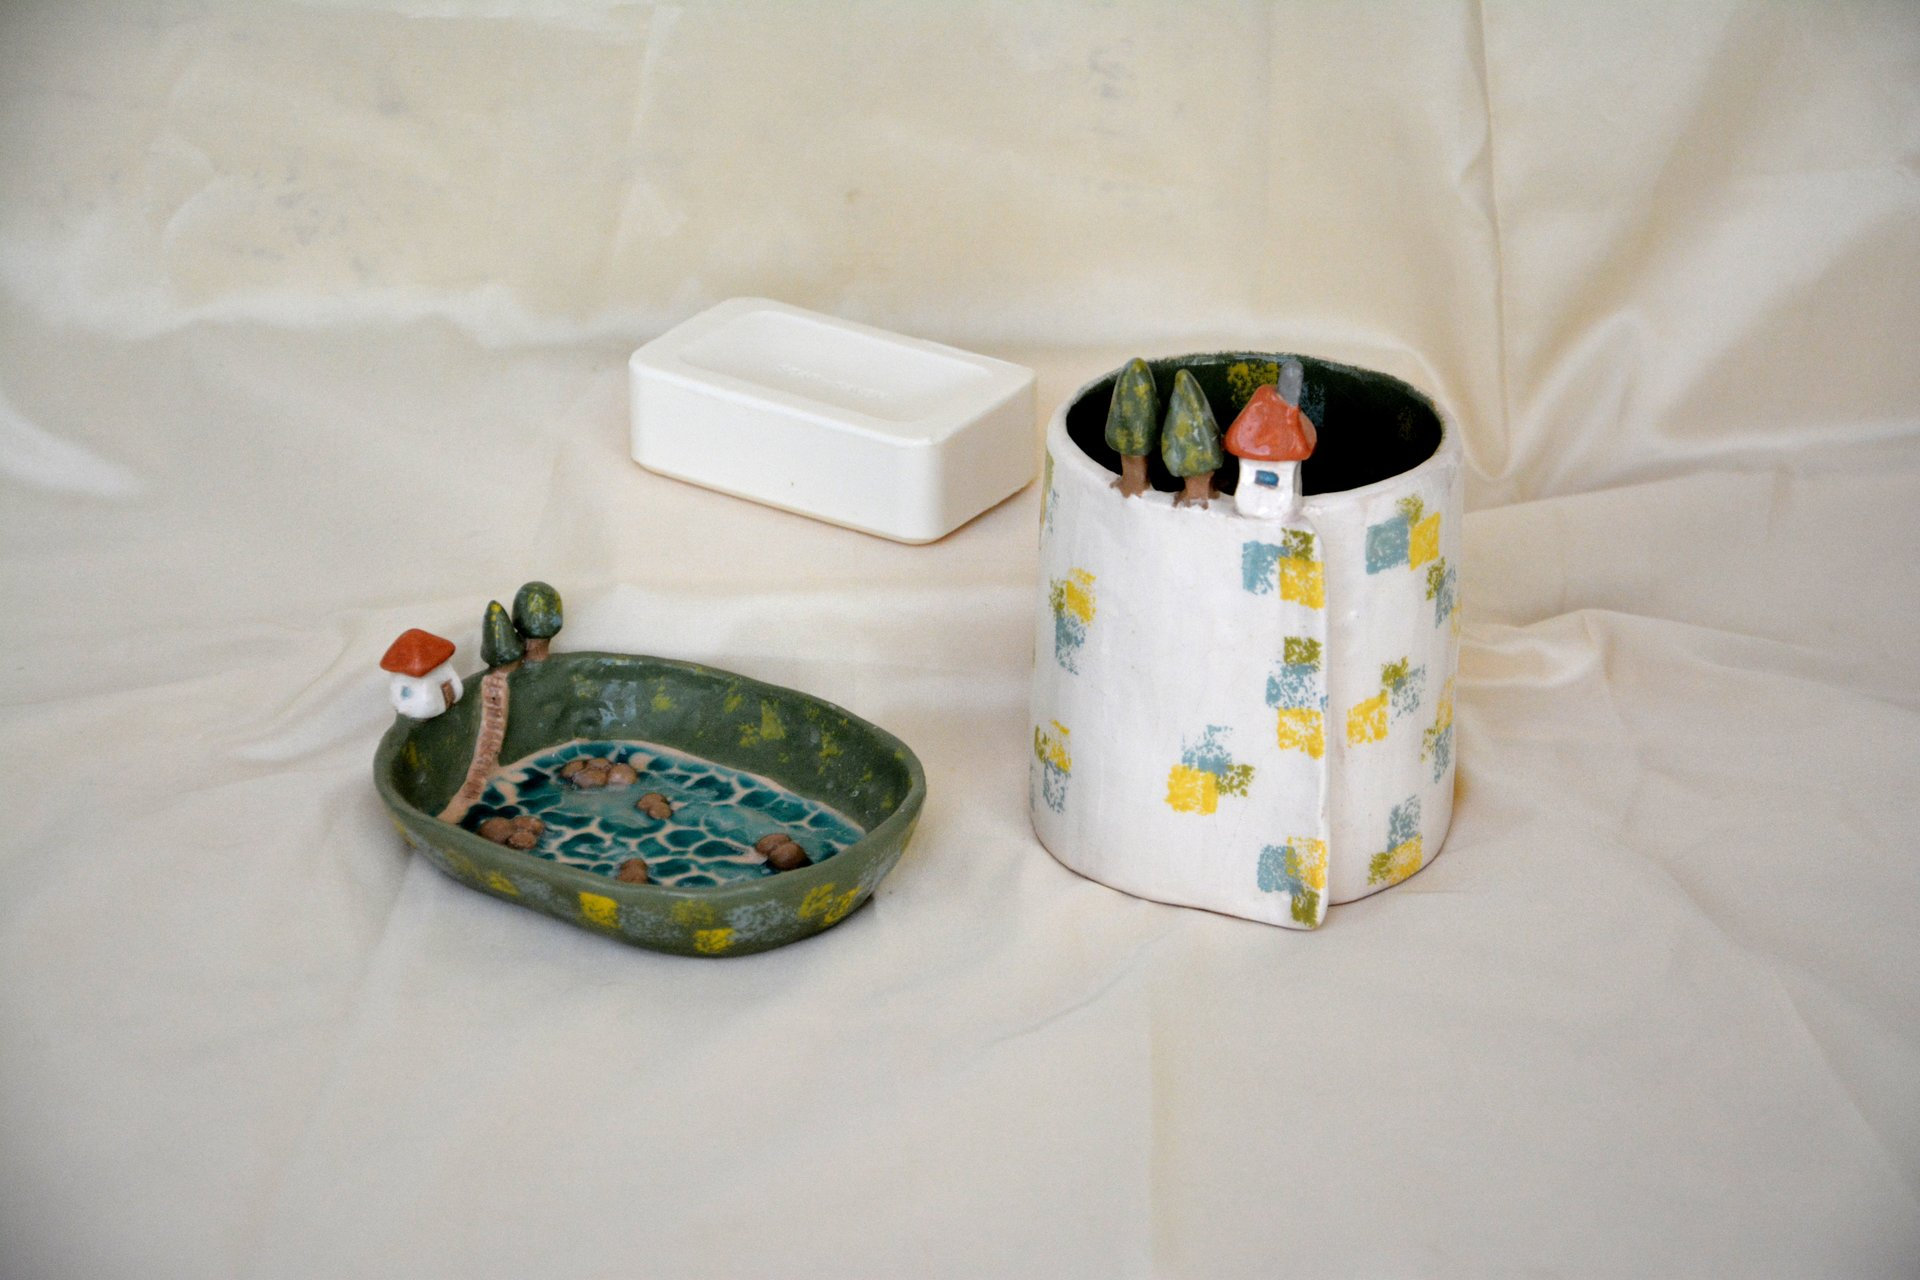 The Set House in the village - Ceramic for bathroom, glass - height 10cm, diameter 9cm, soap dish - 13cm * 10cm, photo 1 of 2.